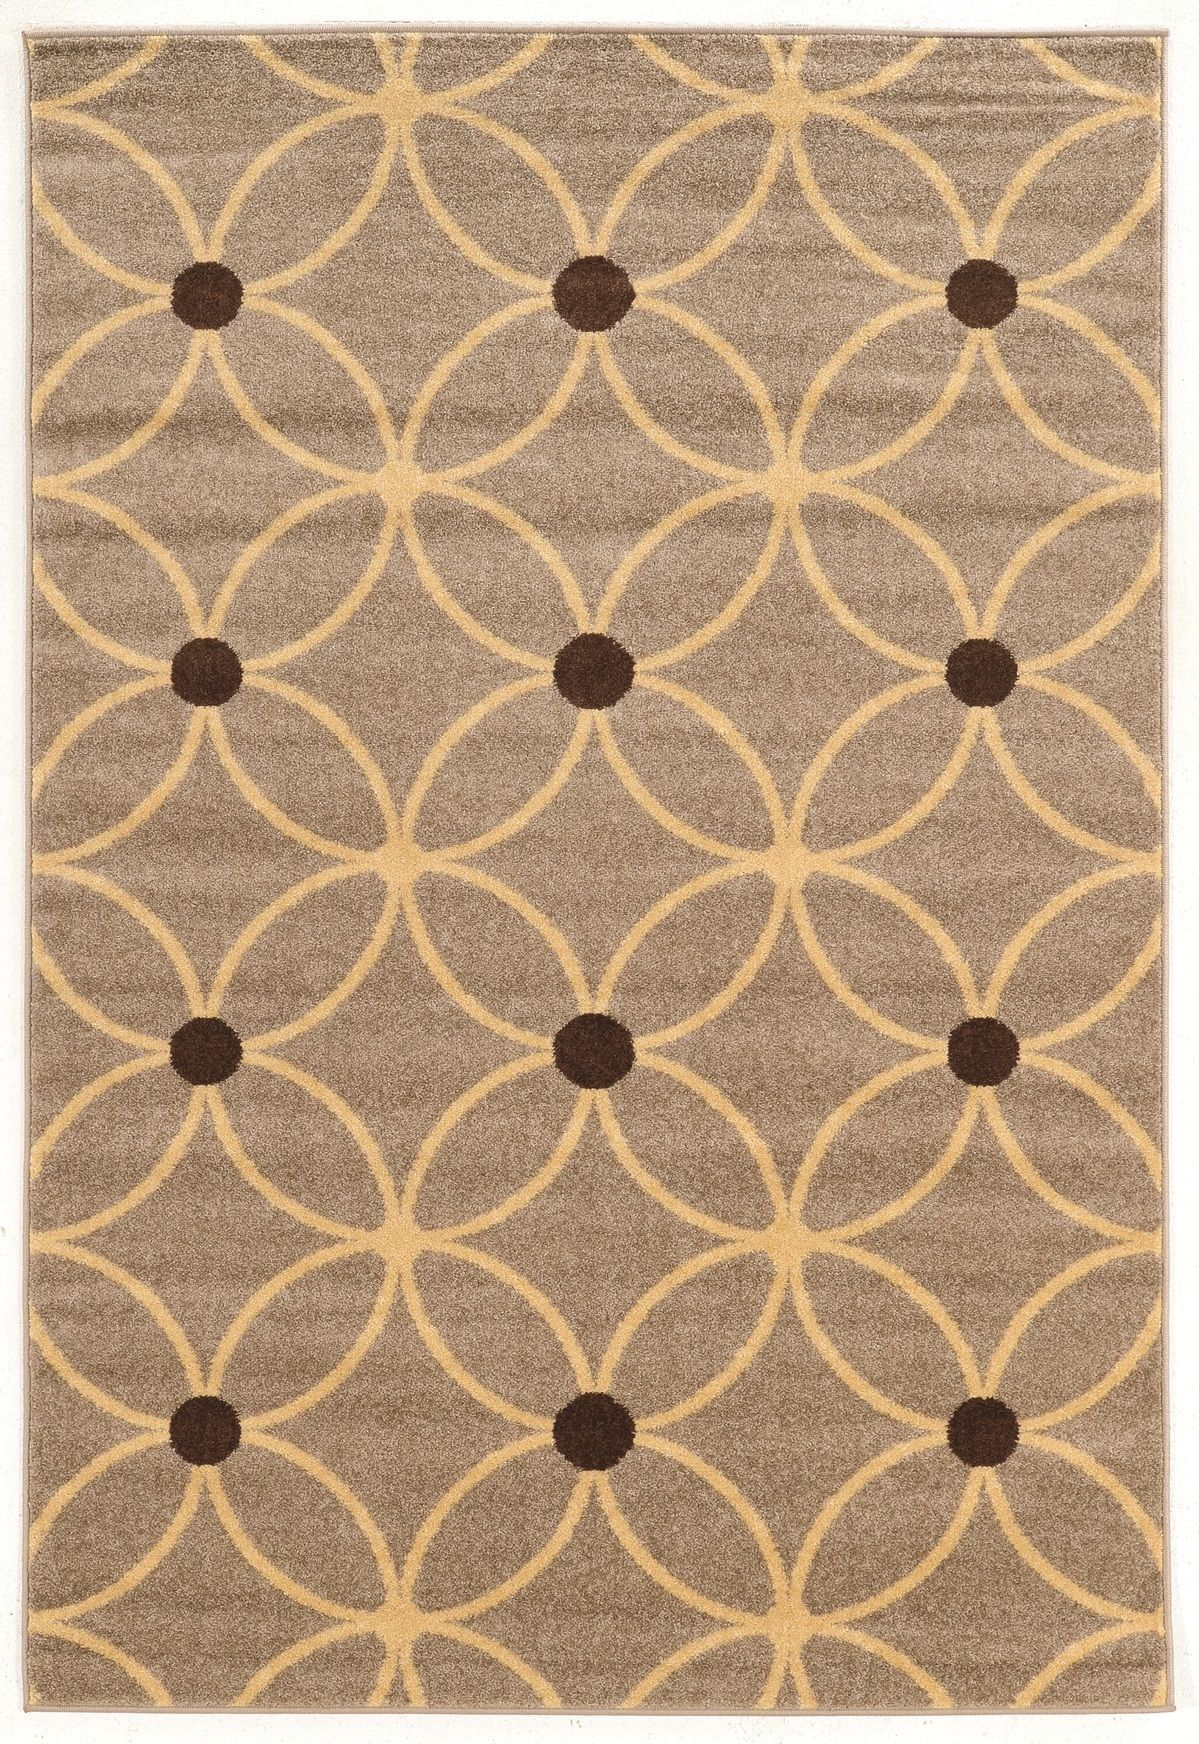 Cylinder Color Beige Brown Size 5 X 7 Geometric Rug Beige Area Rugs Rugs